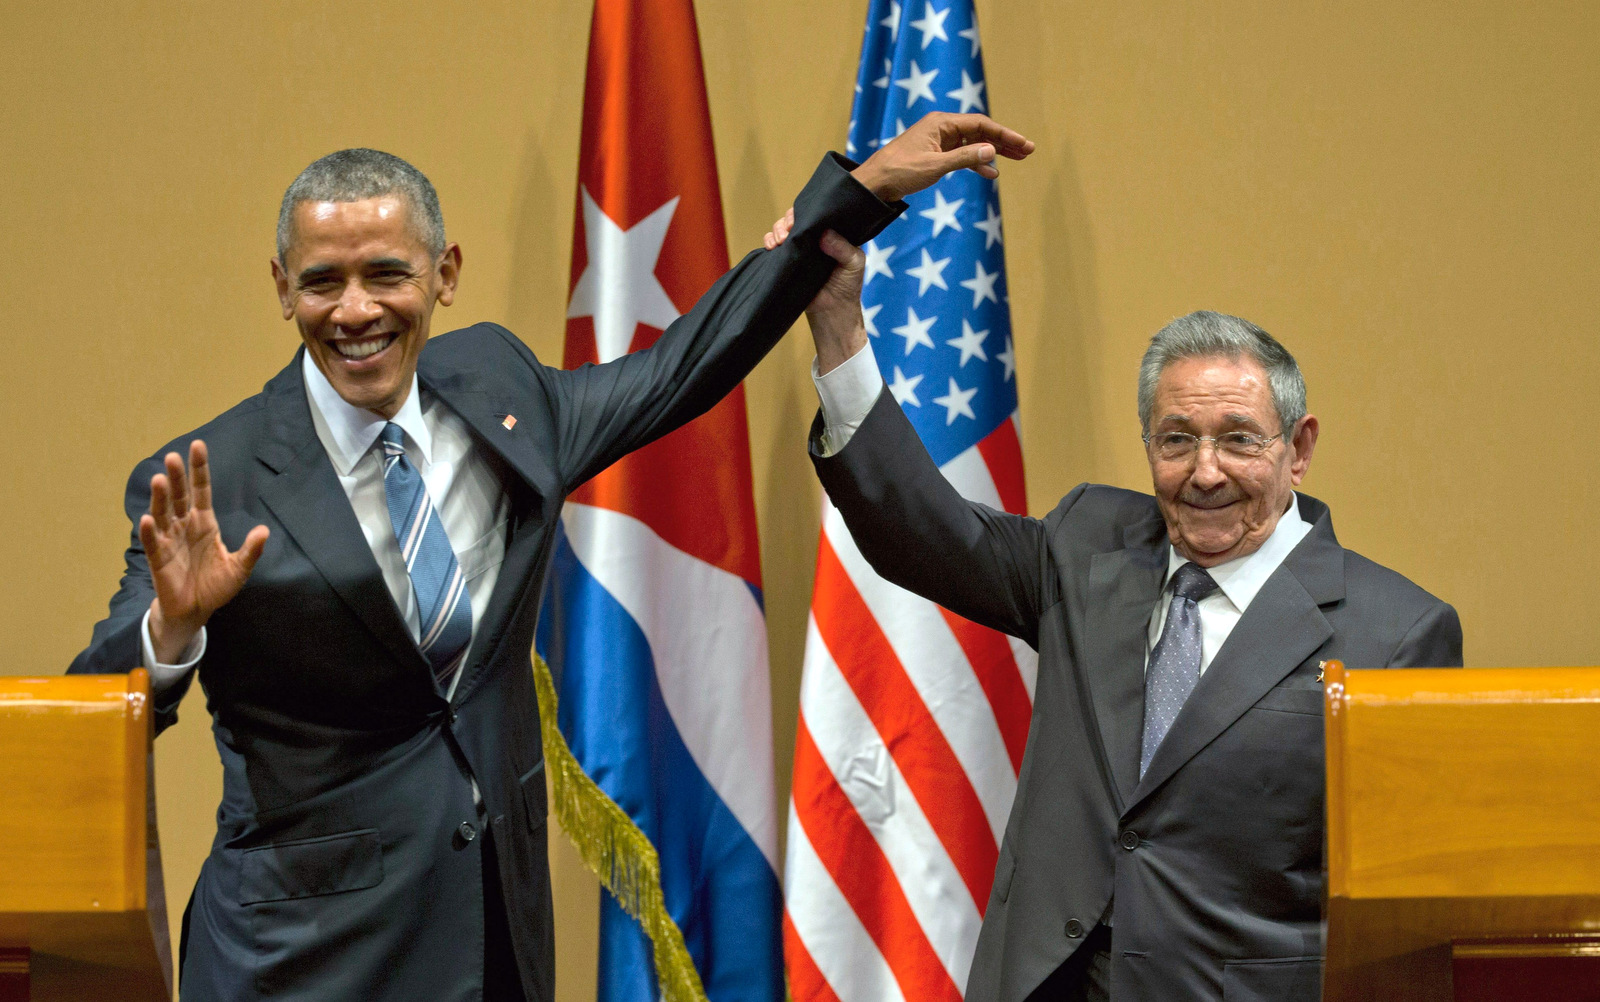 Obama, Castro Lay Bare Tensions On Embargo, Human Rights